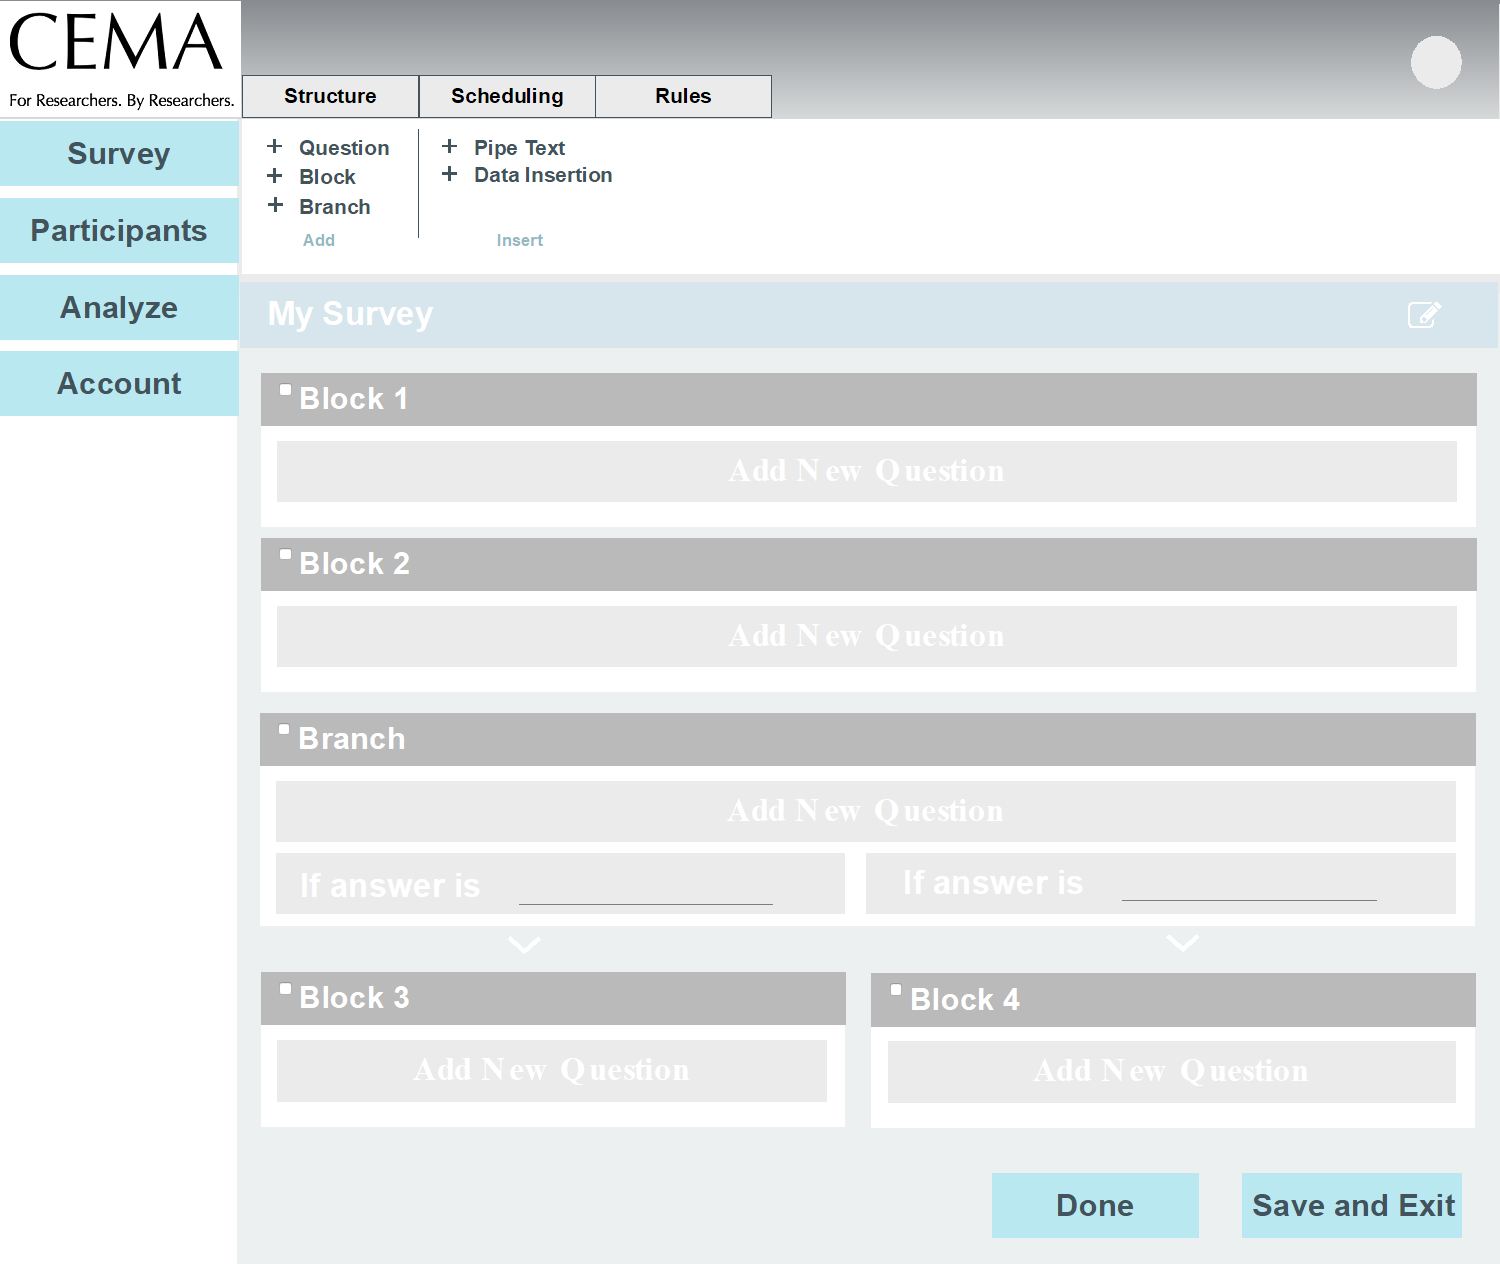 Sunnie Liu Clinical Ema Assessment Tool Interface Design Piping Layout Questionnaire We Created Pages Including A Homepage Displaying Survey Topics Participant Page To Customizing Scheduling And Rules For Questions